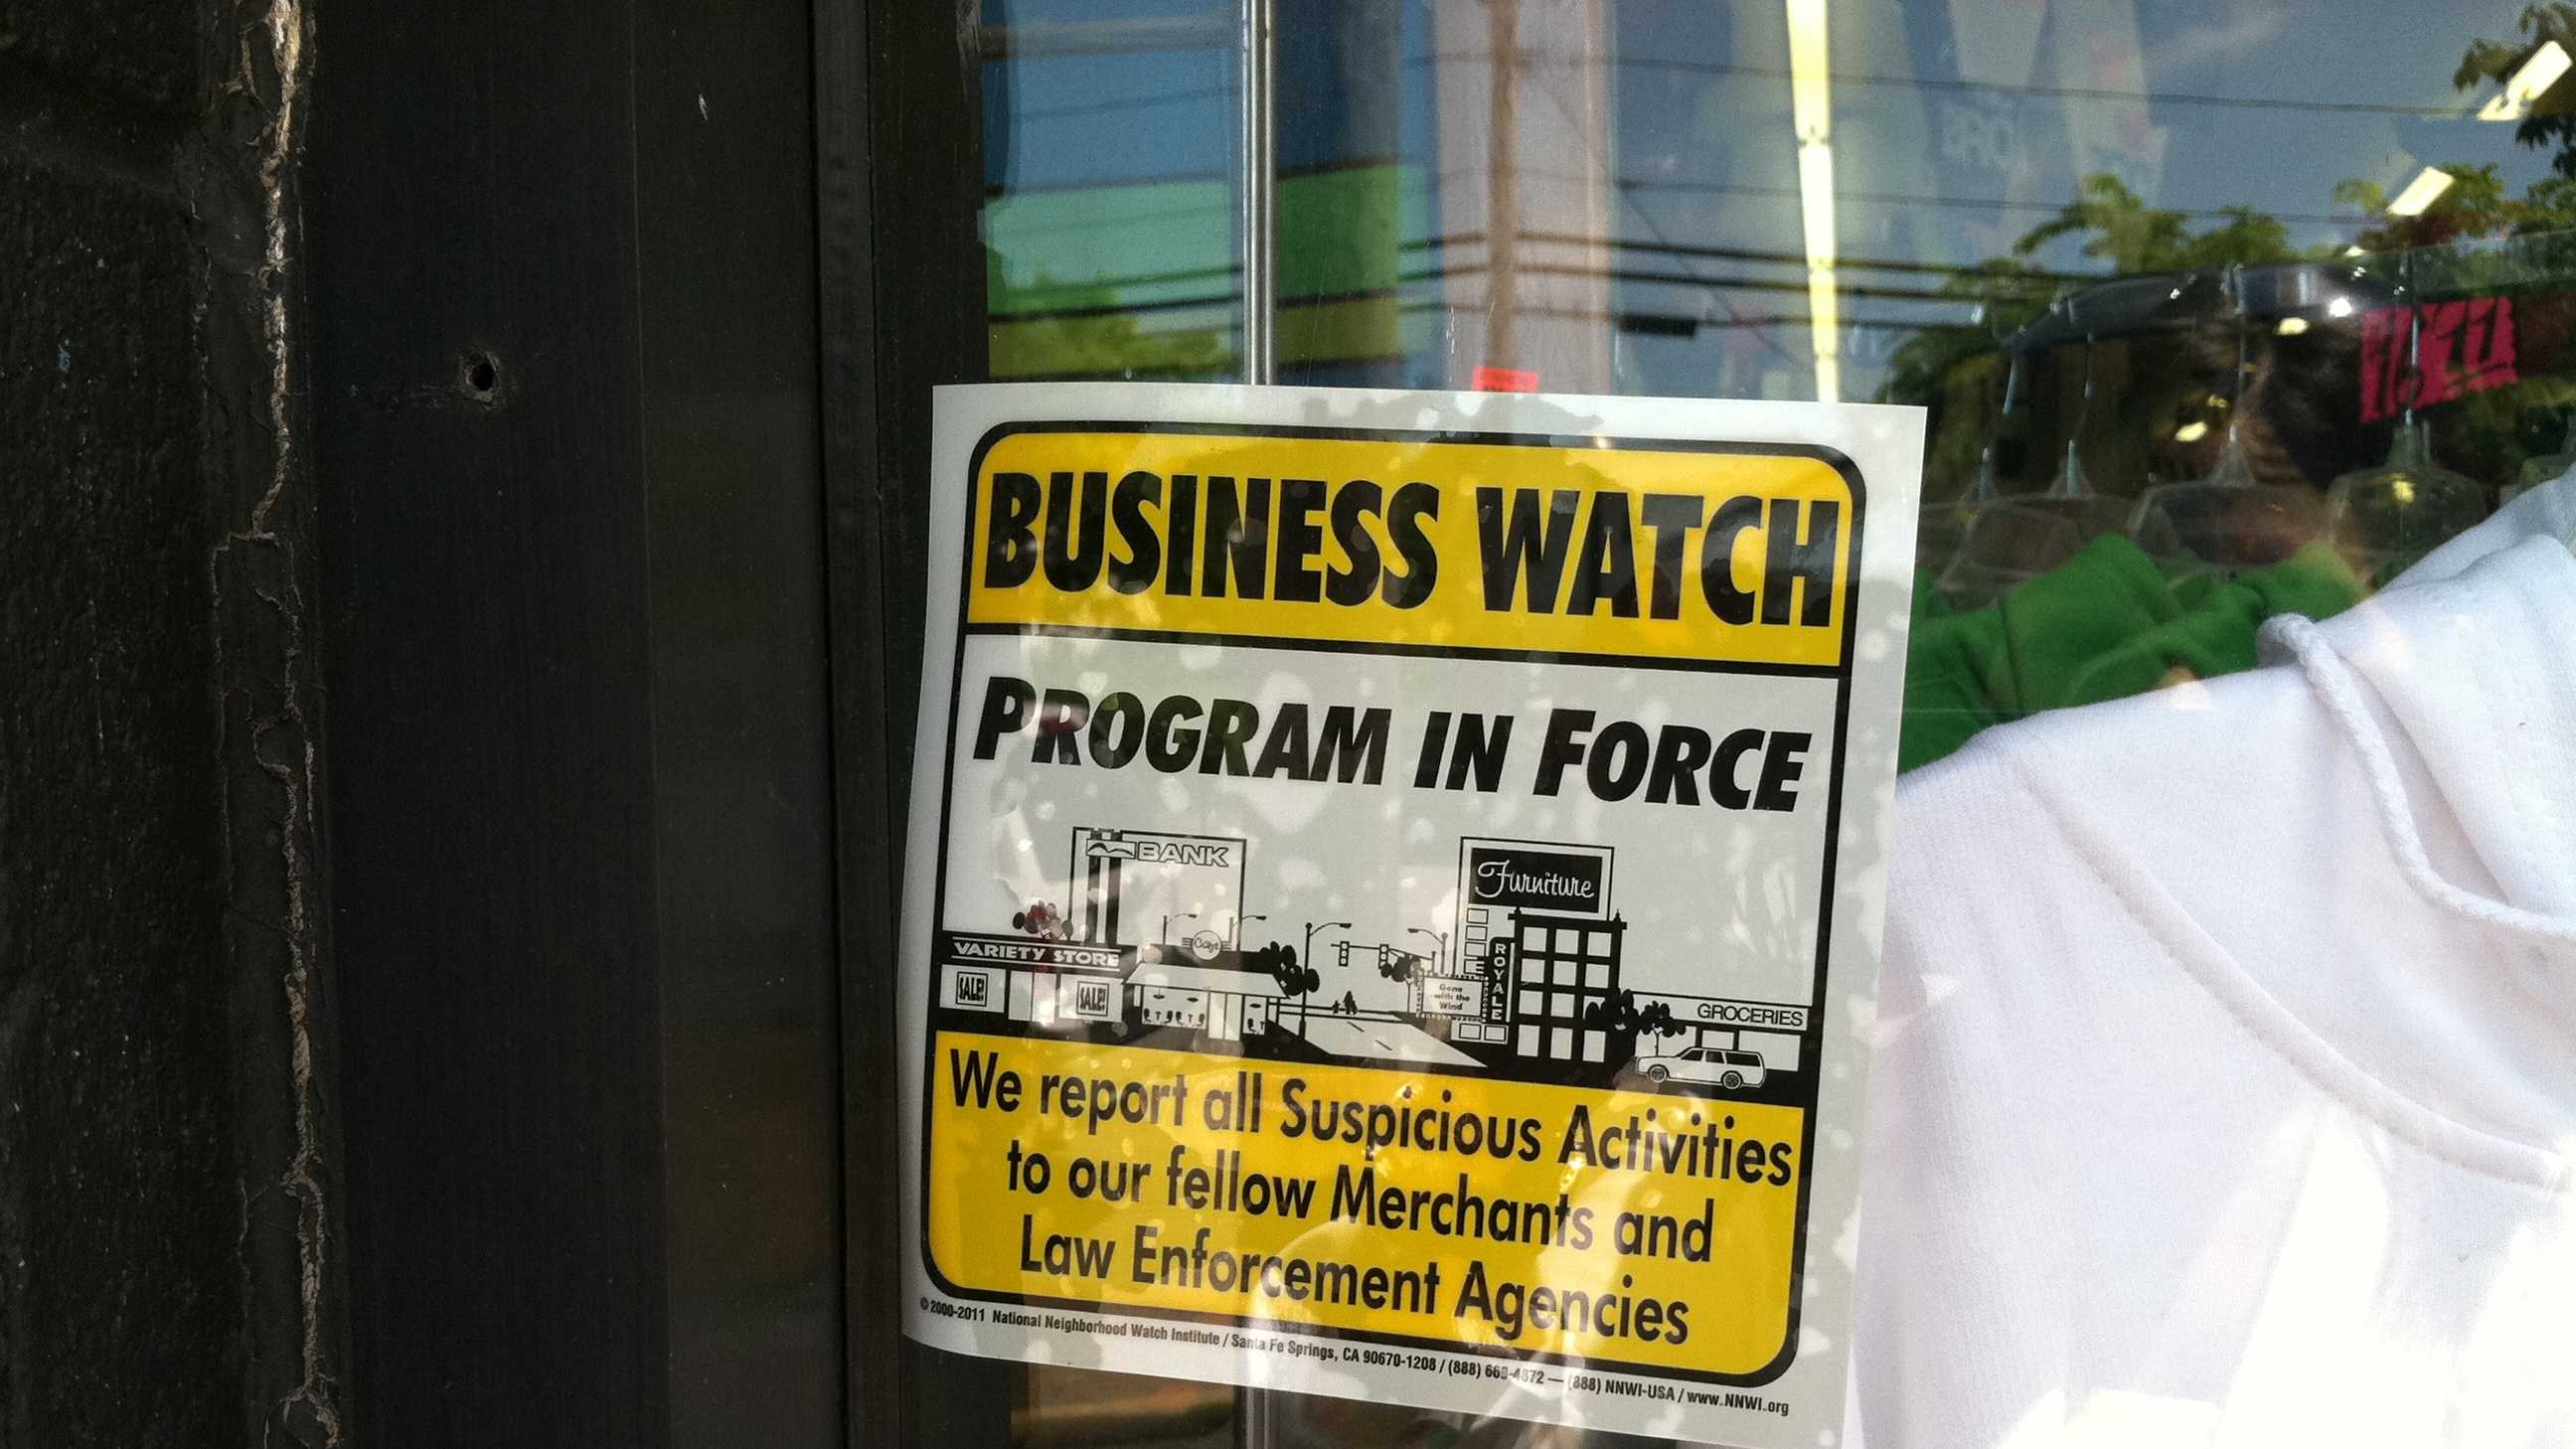 Businesses in the town of Old Orchard Beach have formed a crime watch program.